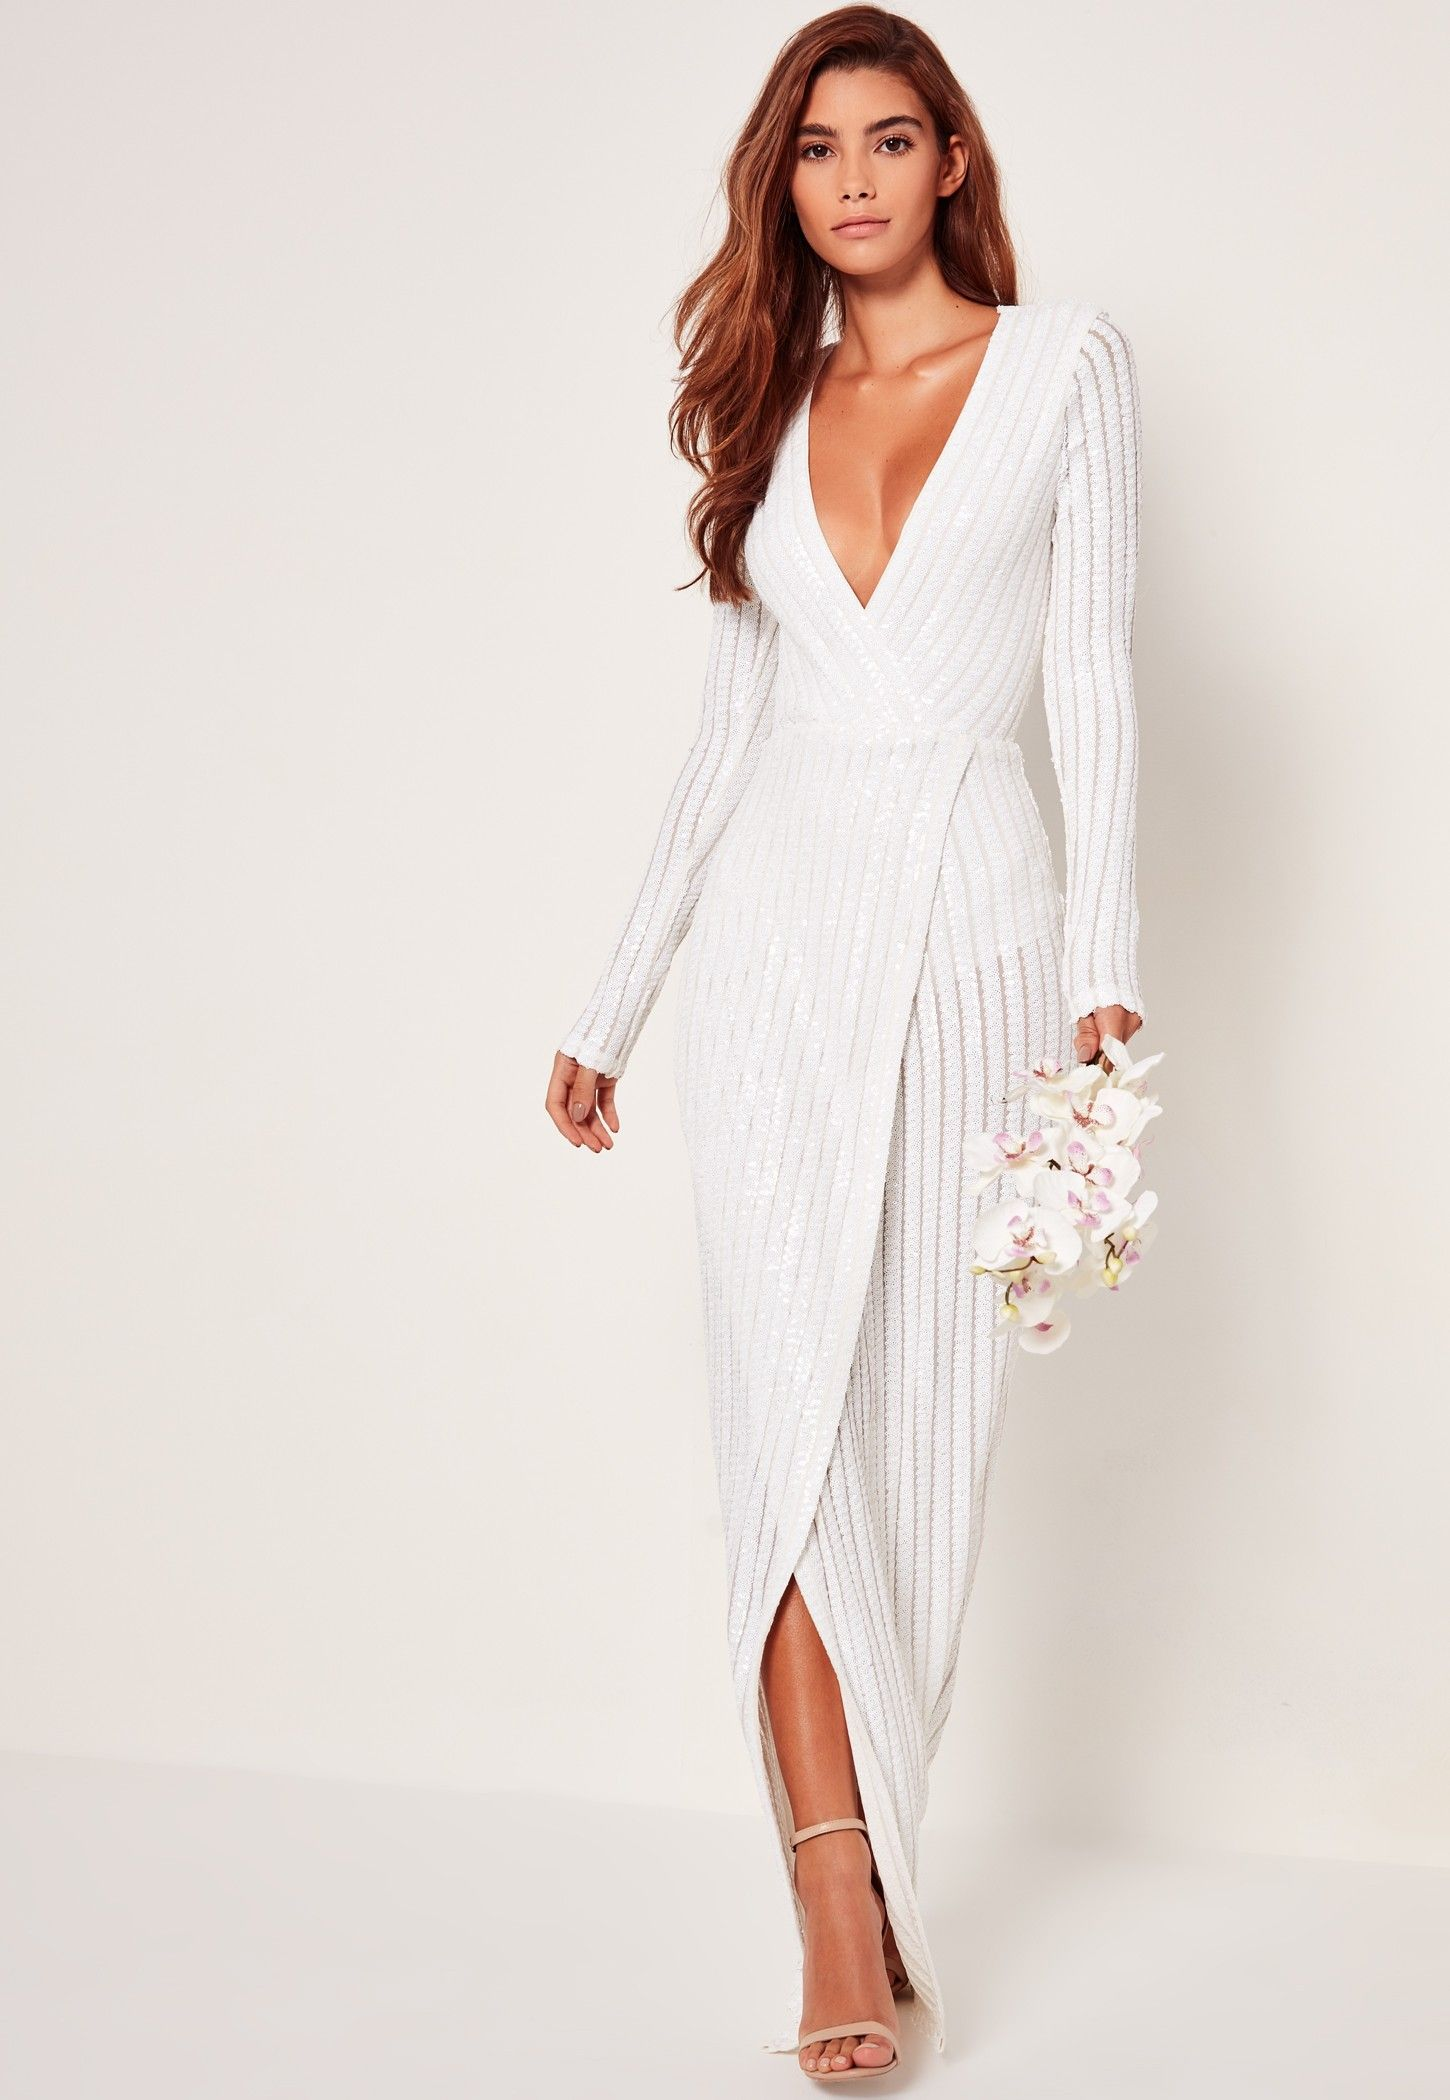 68c04f5112a672 Brides and sequins totally go! Go for this classic white wedding dress in a maxi  length and un-traditional wrap design to the front.